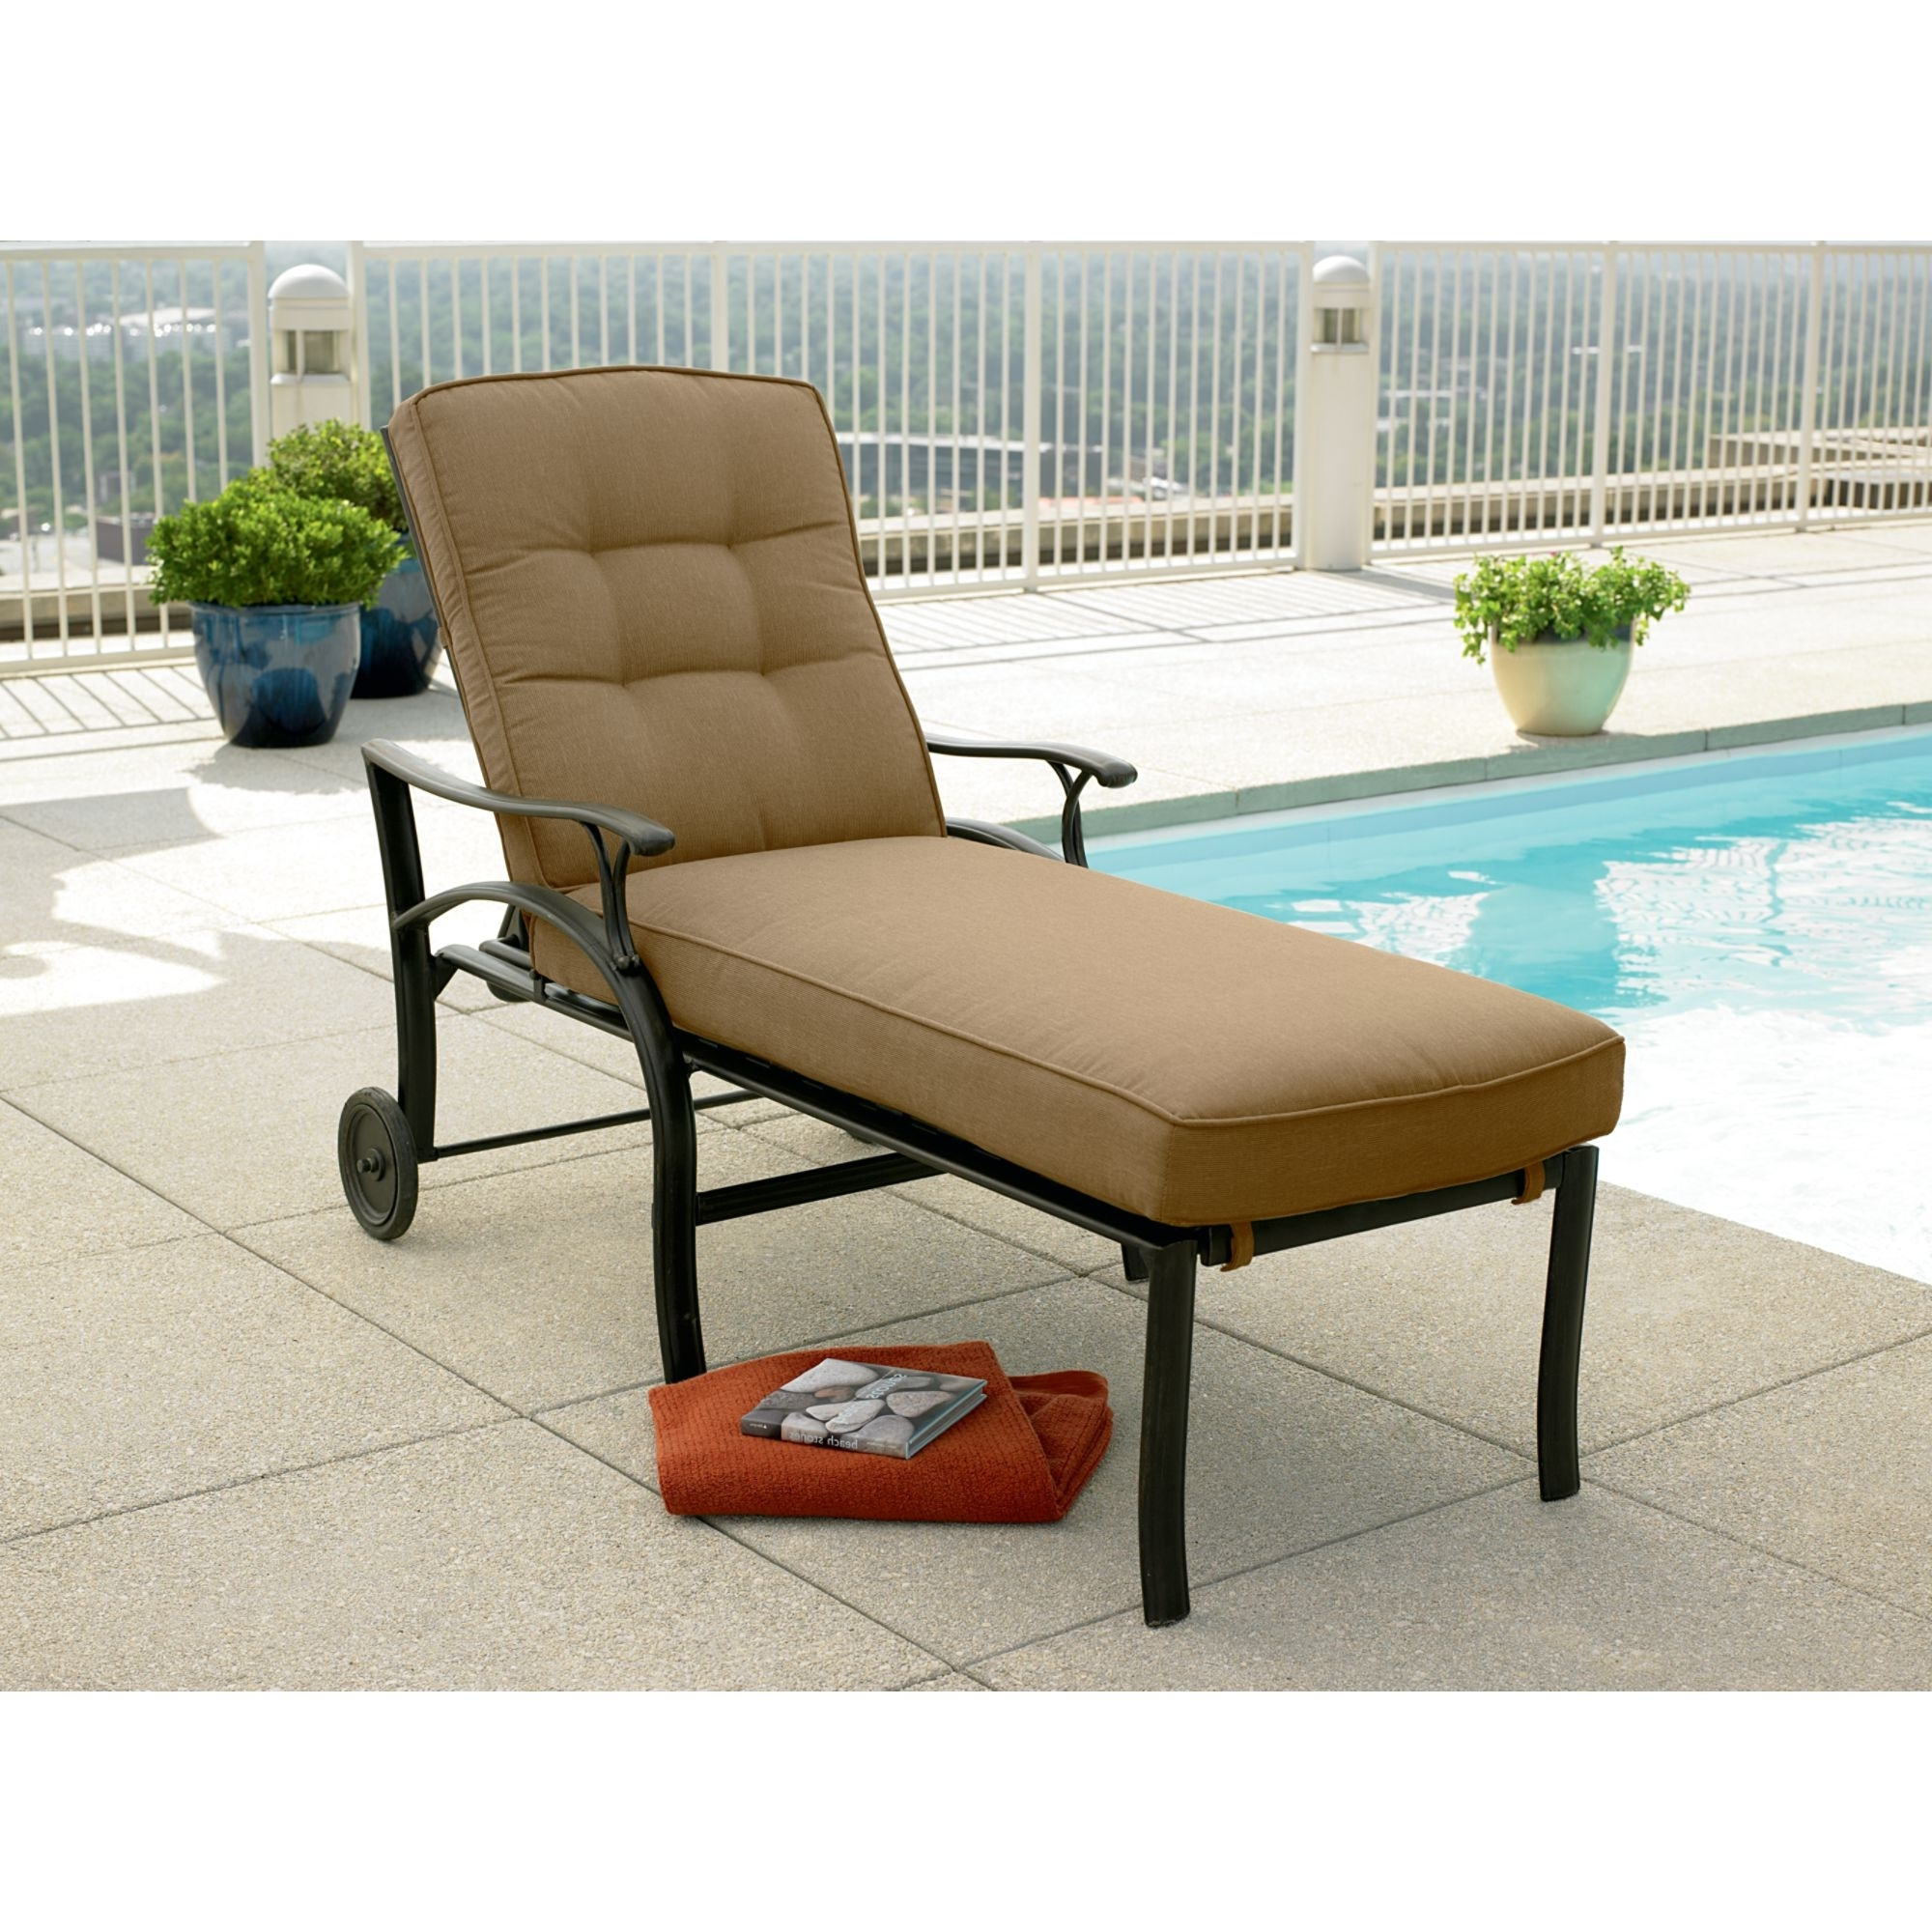 Adelaide Chaise Lounge Chairs With Recent Furniture: Patio Chaise Lounge Chairs Walmart Lounges With Pool (View 3 of 15)